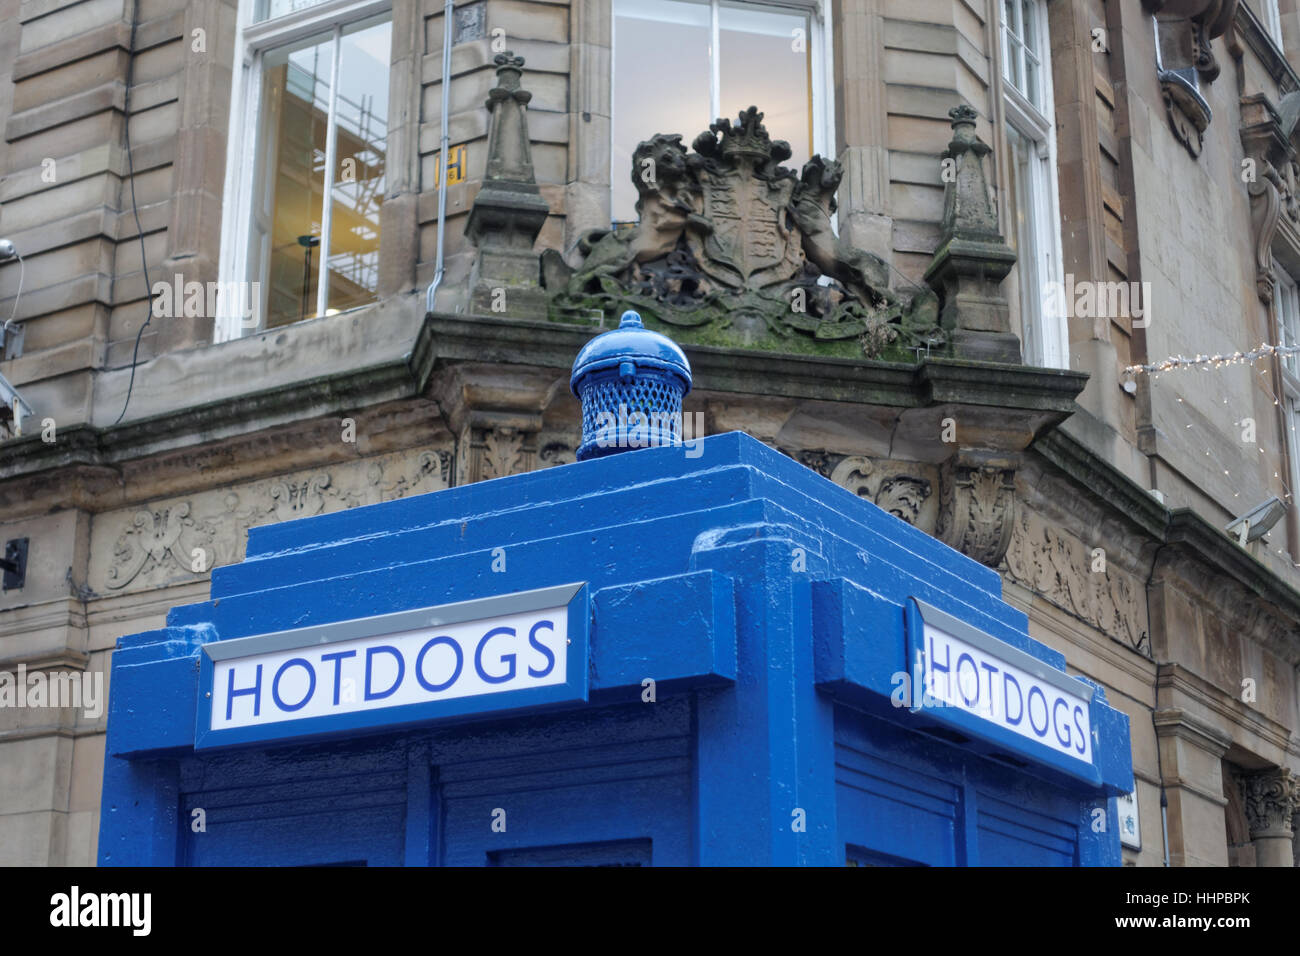 hotdog restaurant pop up police box dr who tardis  site for The Ivy Glasgow World-famous celeb hangout  opening - Stock Image